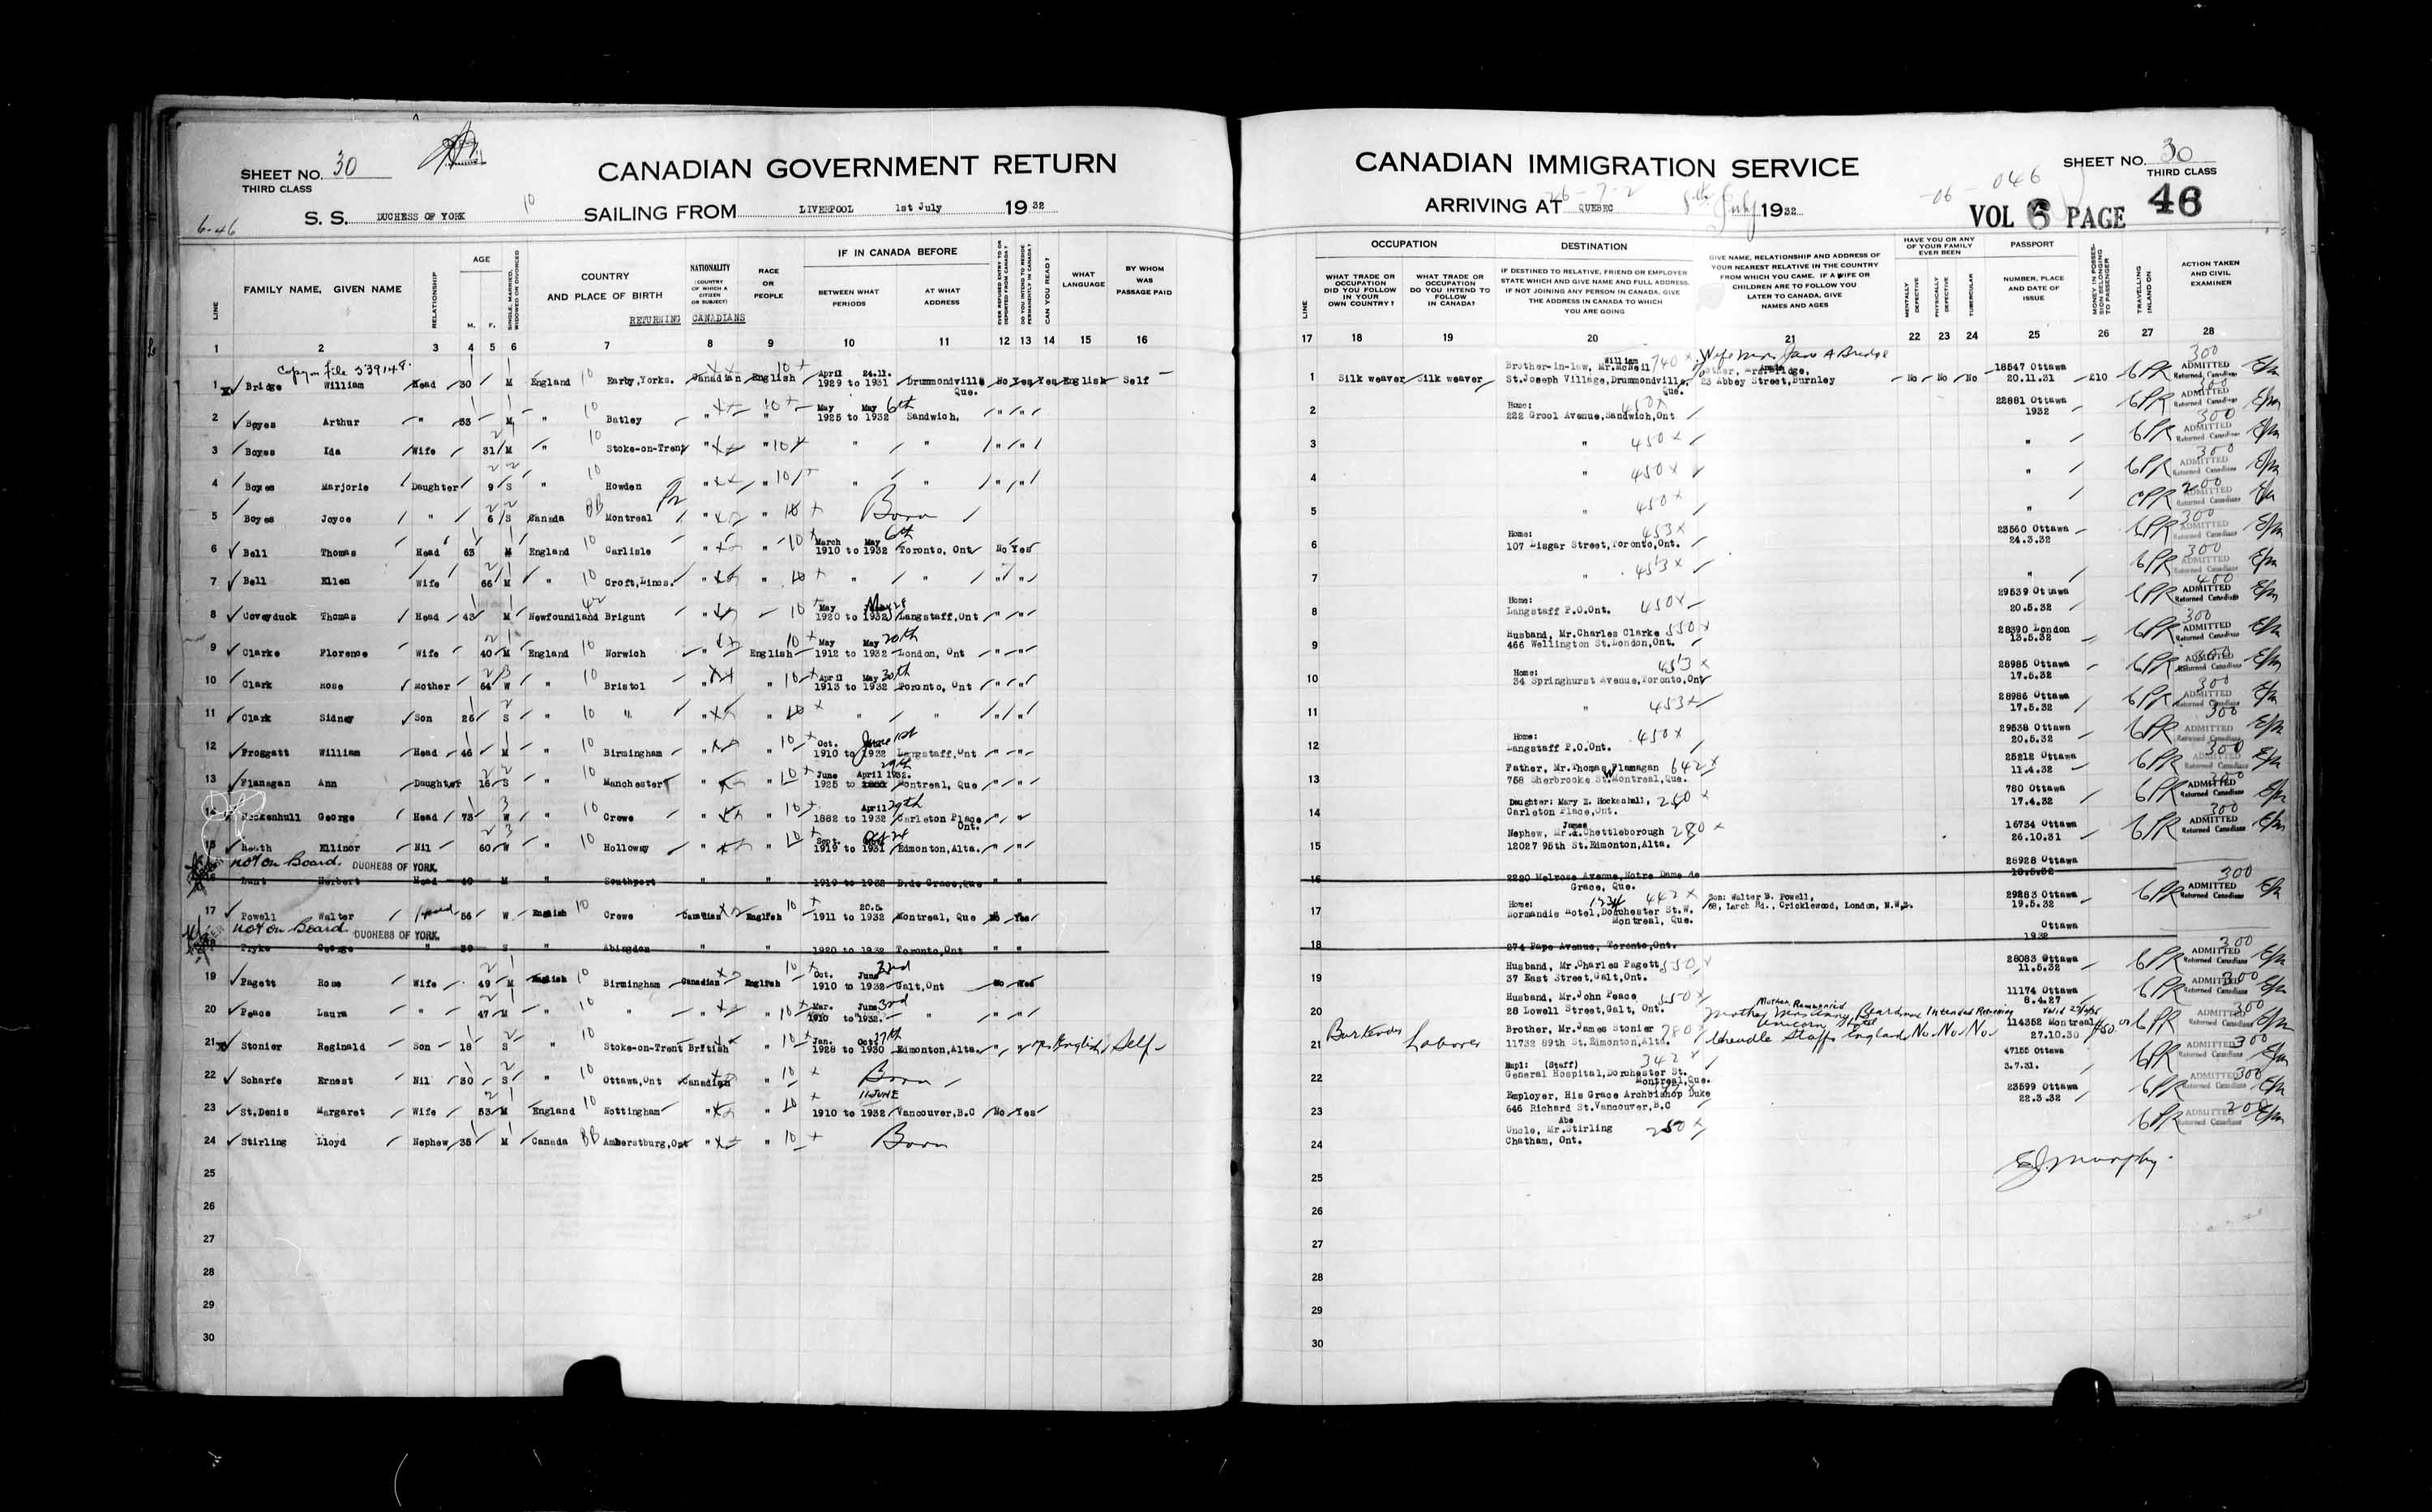 Title: Passenger Lists: Quebec City (1925-1935) - Mikan Number: 134839 - Microform: t-14779